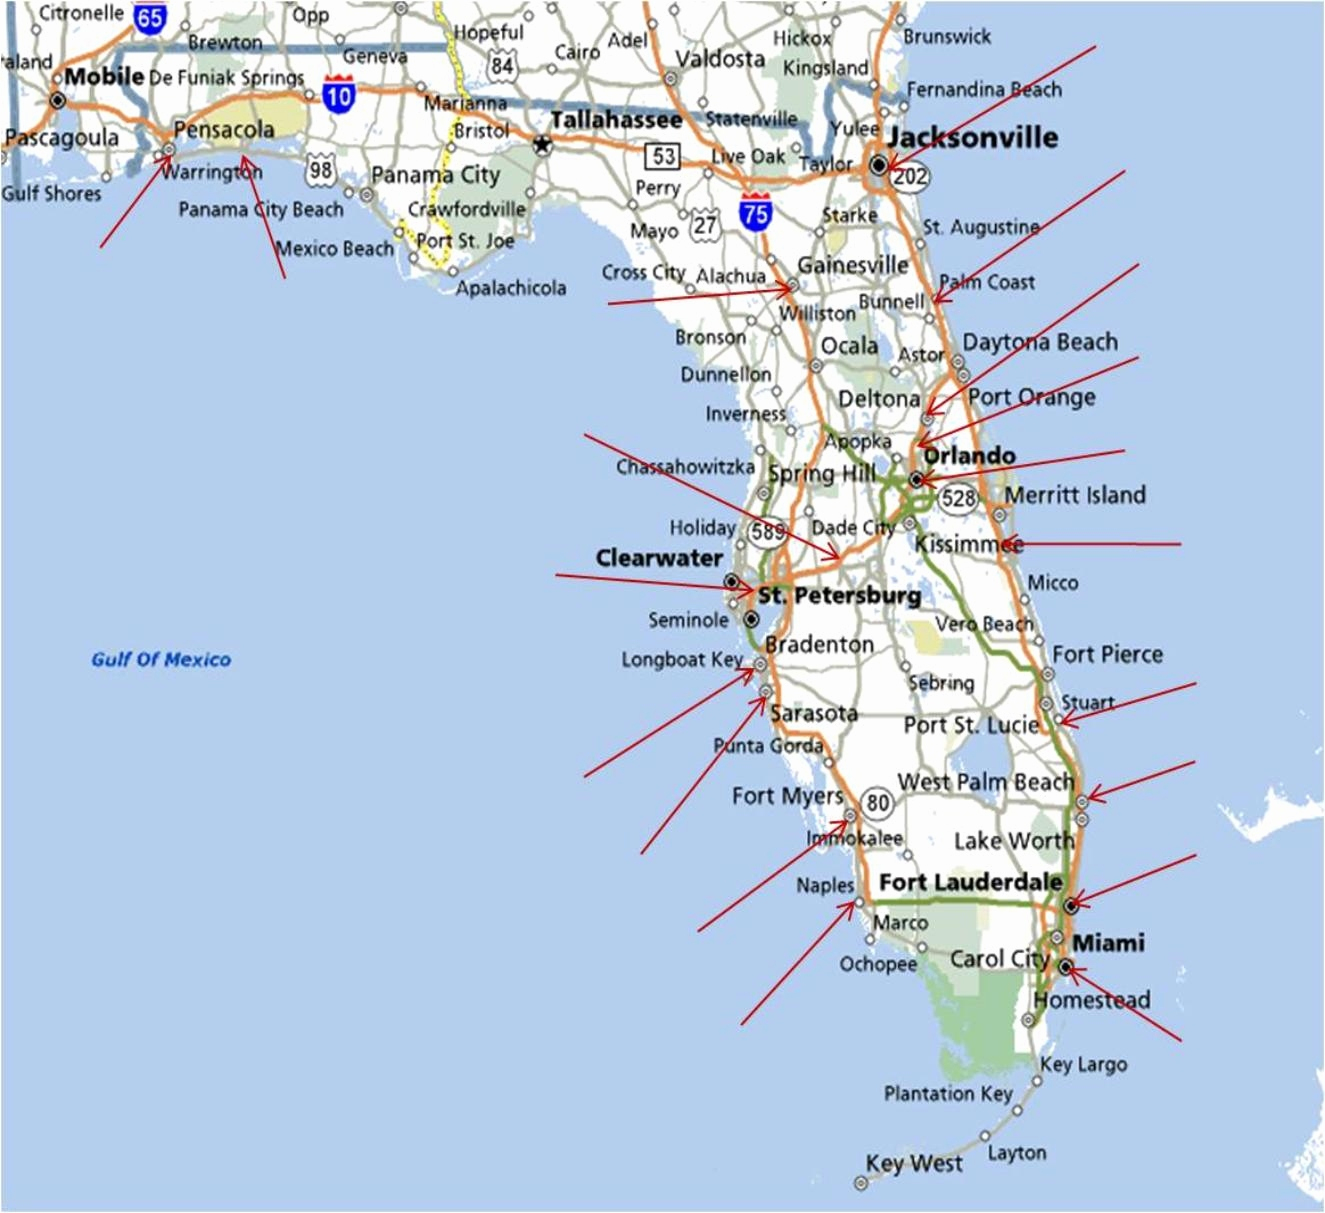 Best East Coast Florida Beaches New Map Florida West Coast Florida - Map Of East Coast Of Florida Cities